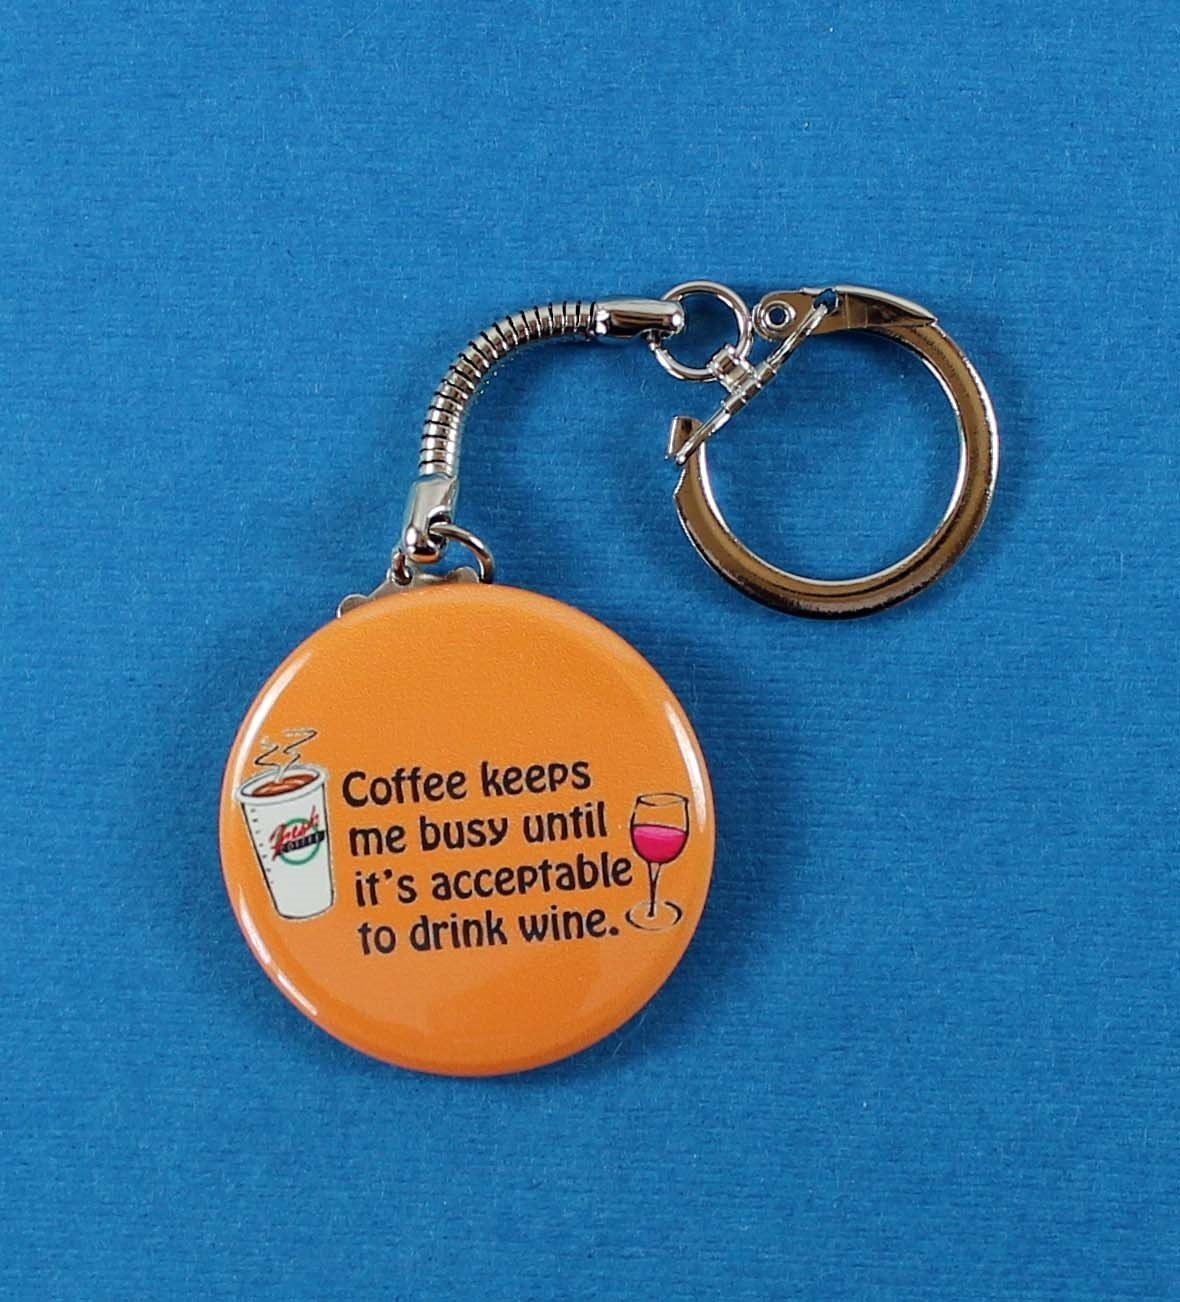 Amazon com: Coffee Keeps Me Busy Until It's Acceptable to Drink Wine